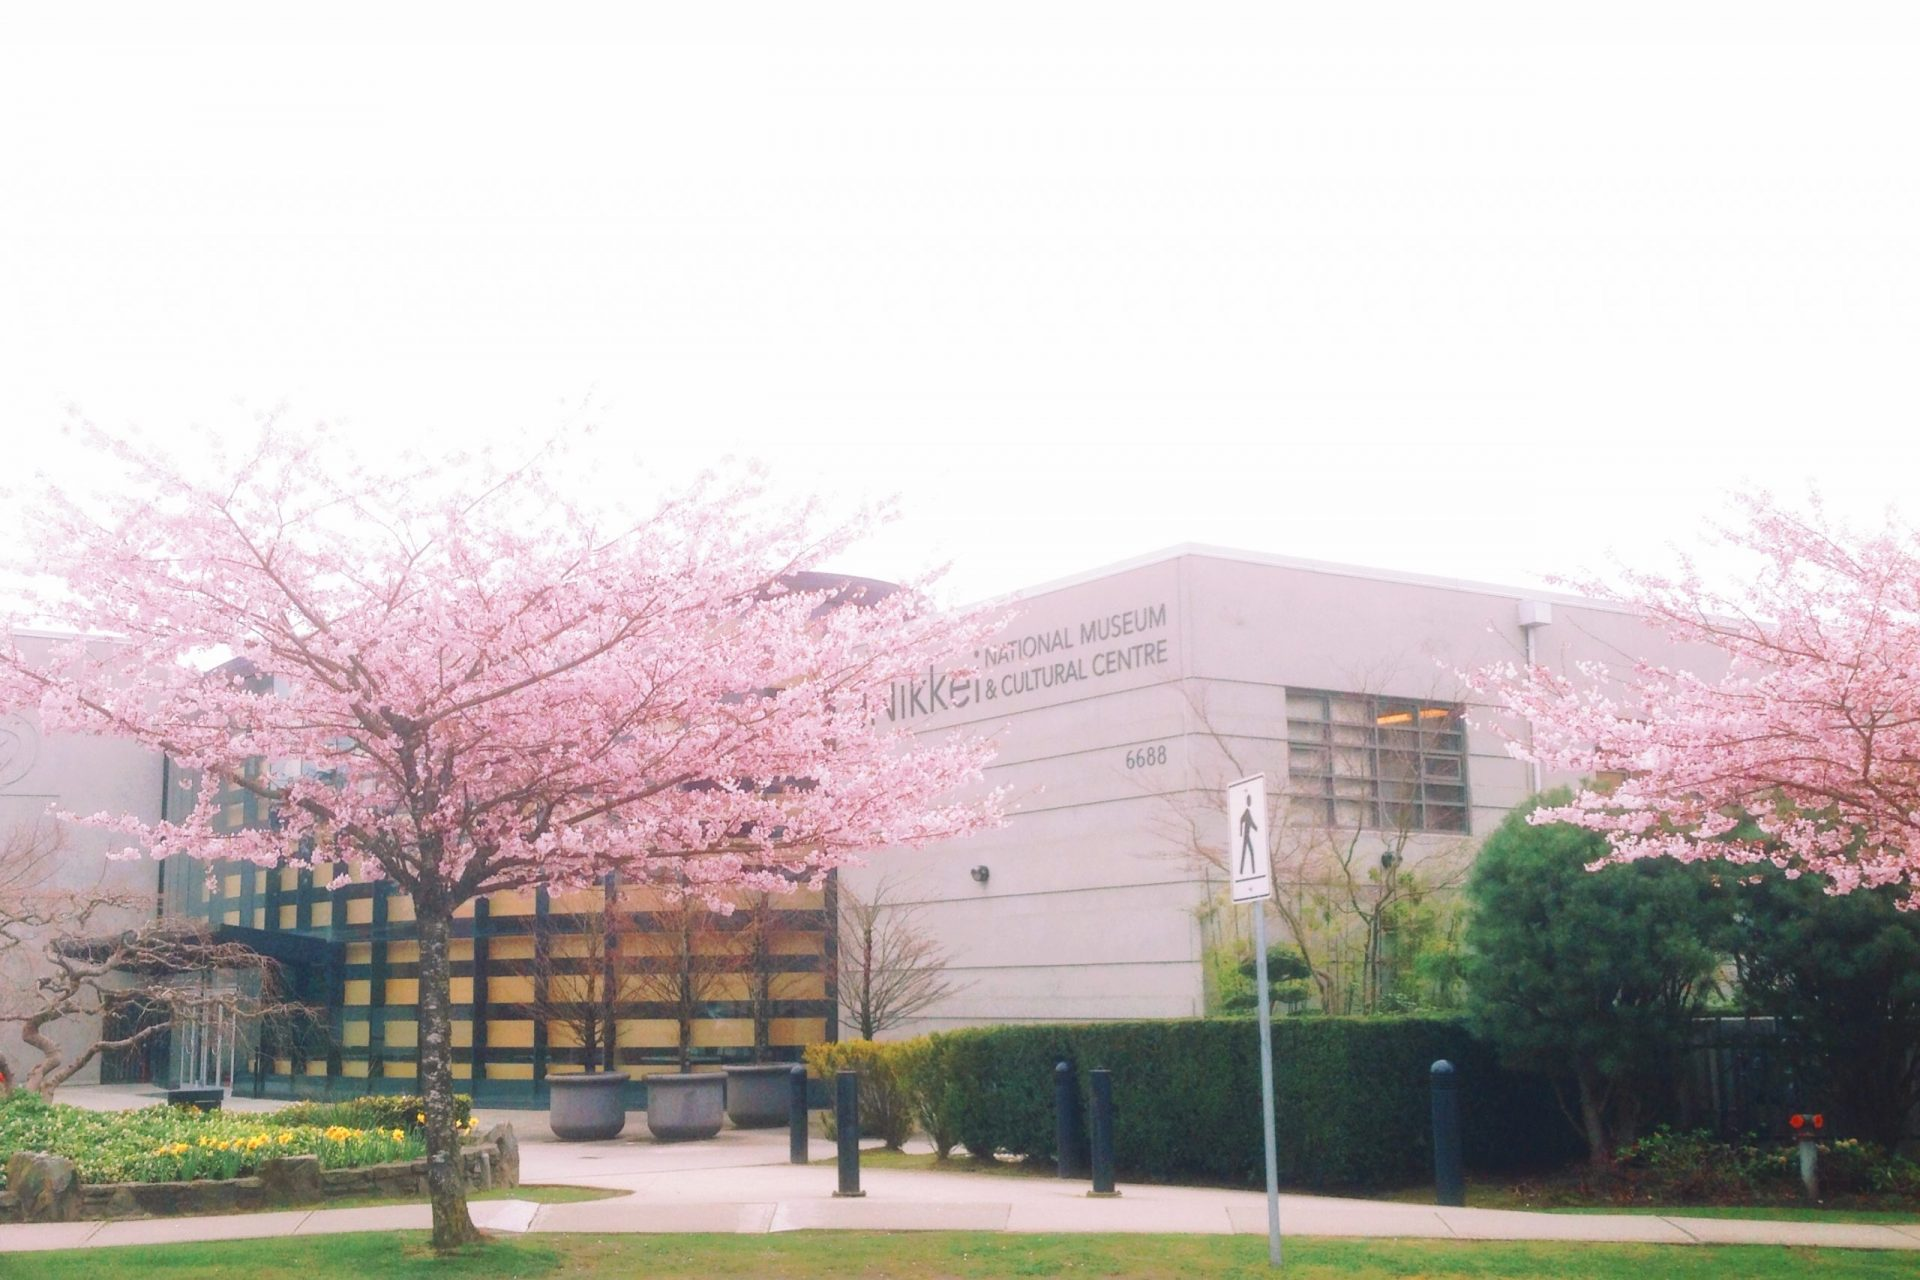 The Nikkei National Museum & Cultural Centre